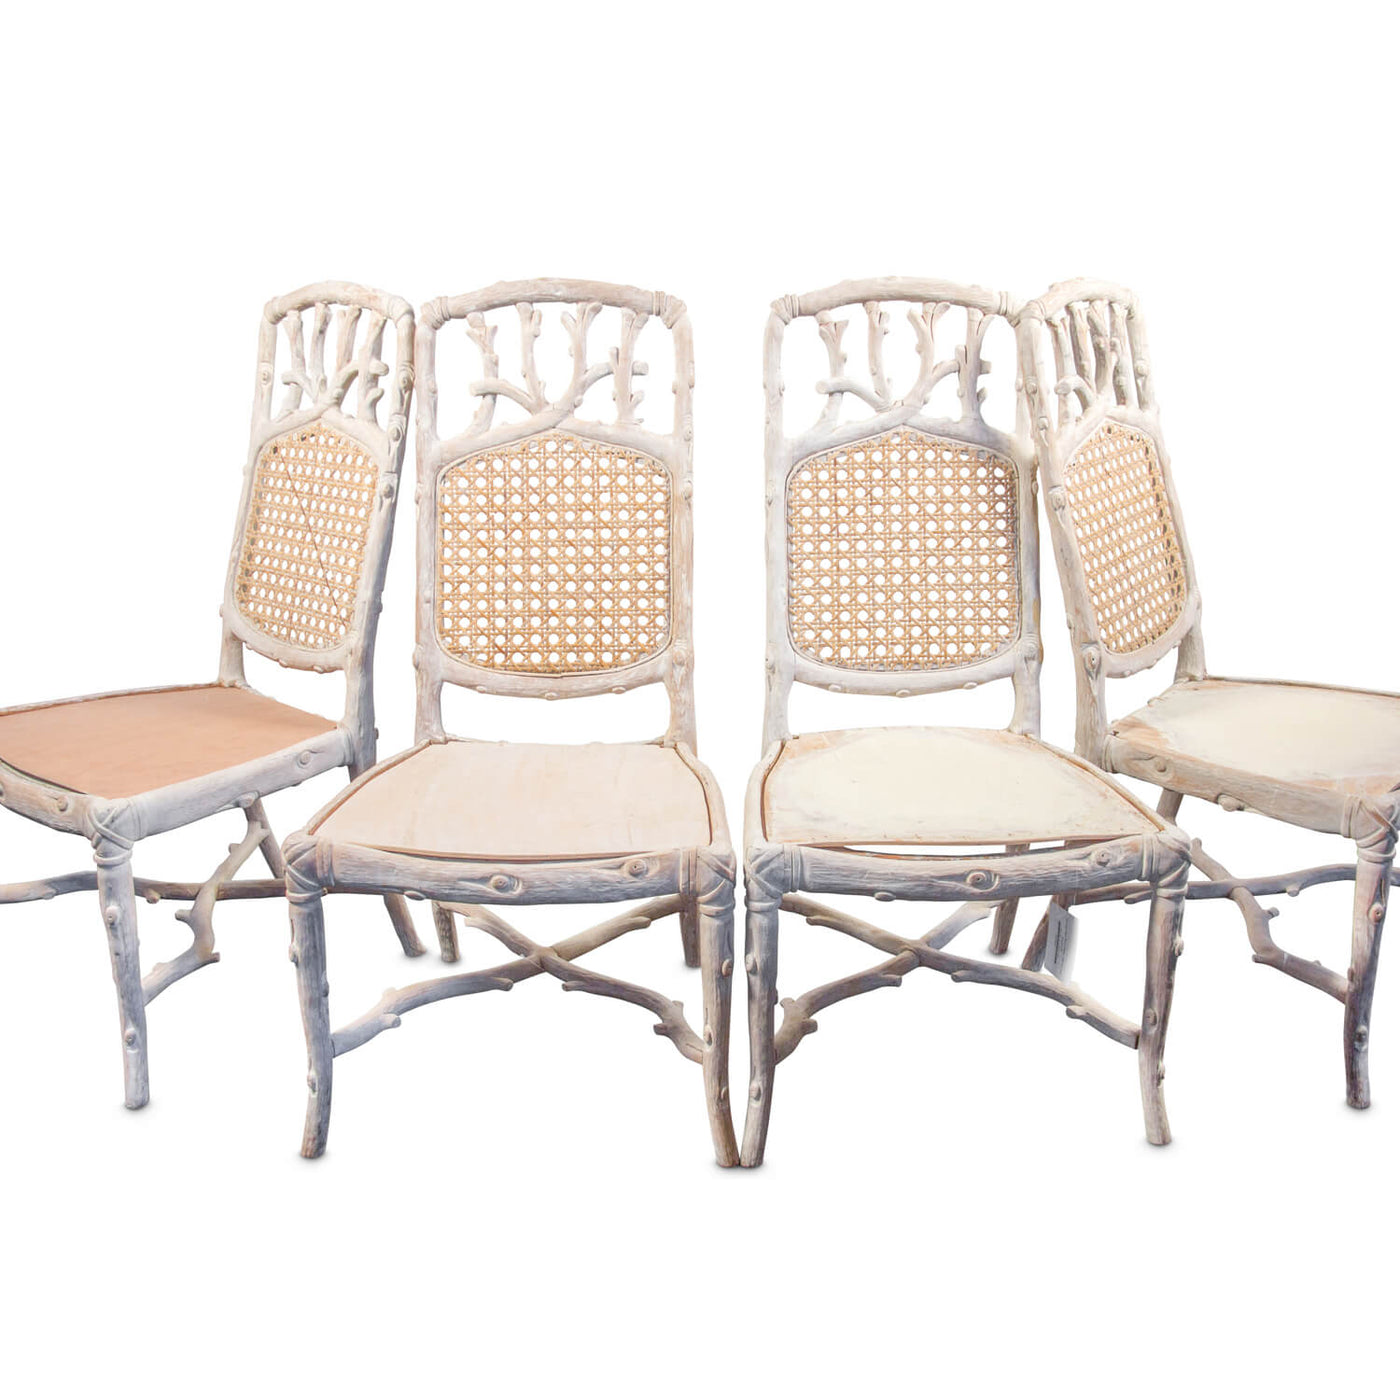 Vintage Faux Bois Chairs - Set of Four